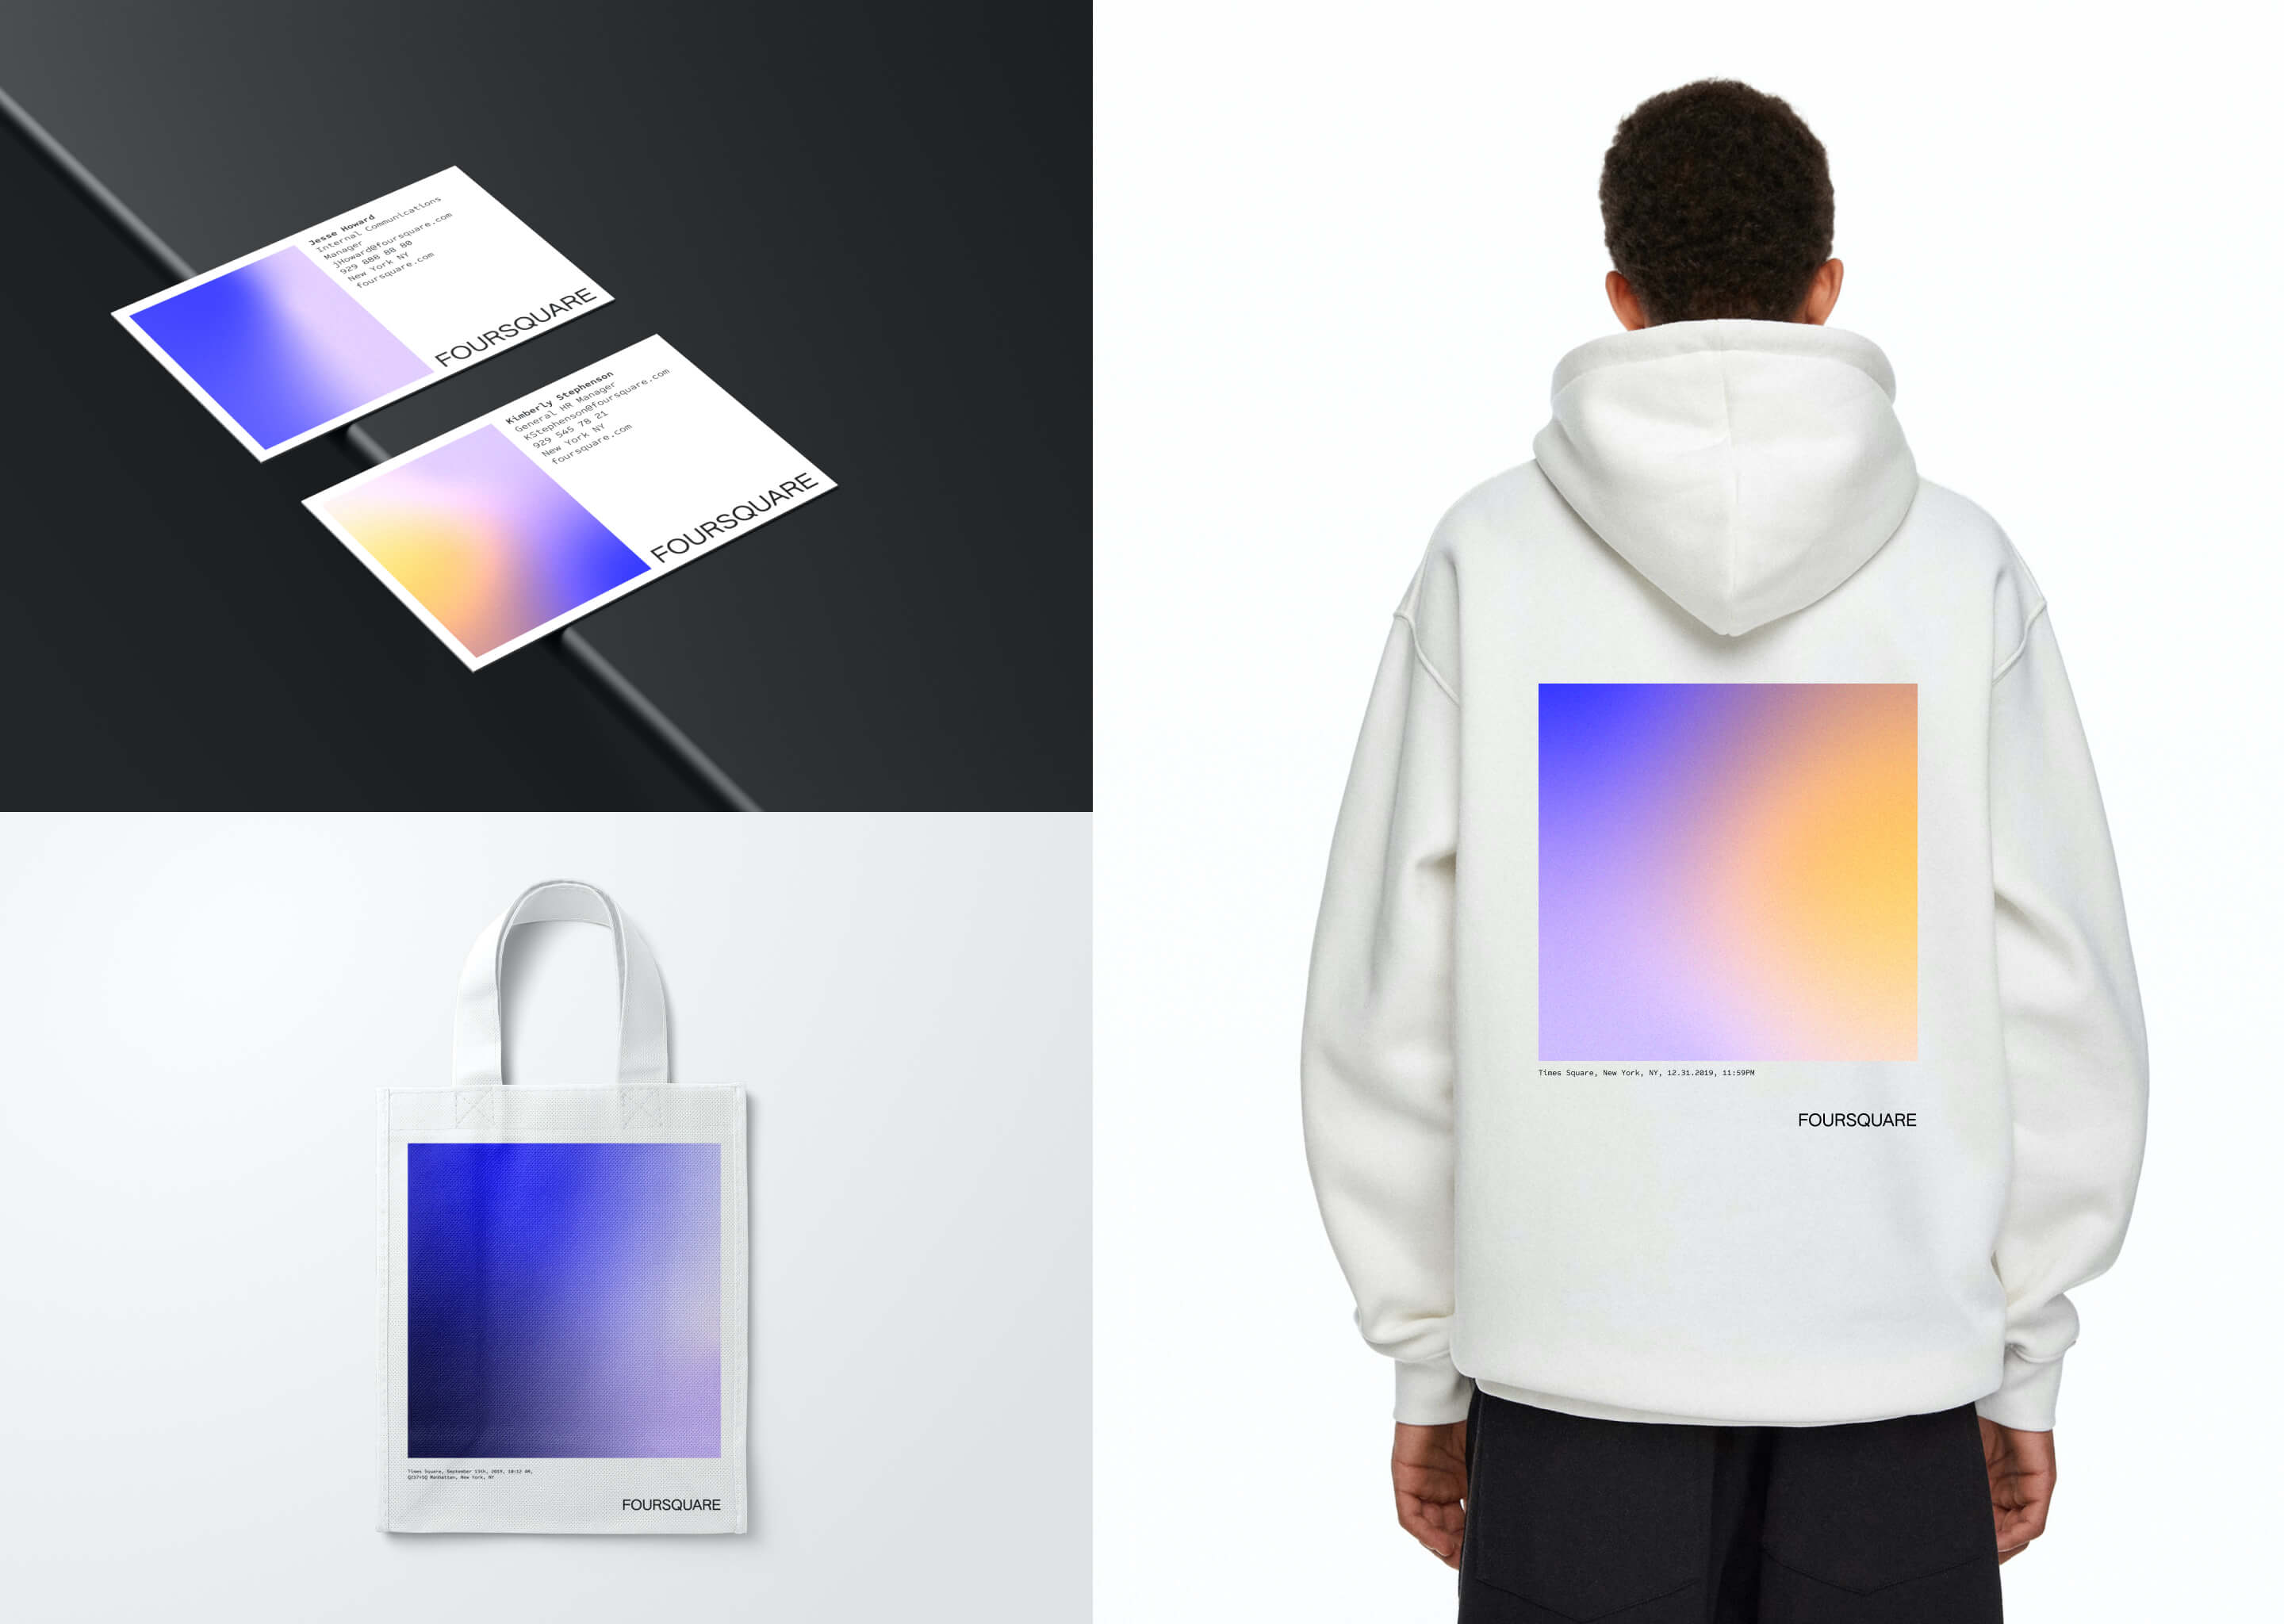 Image: New branding gradient and swag